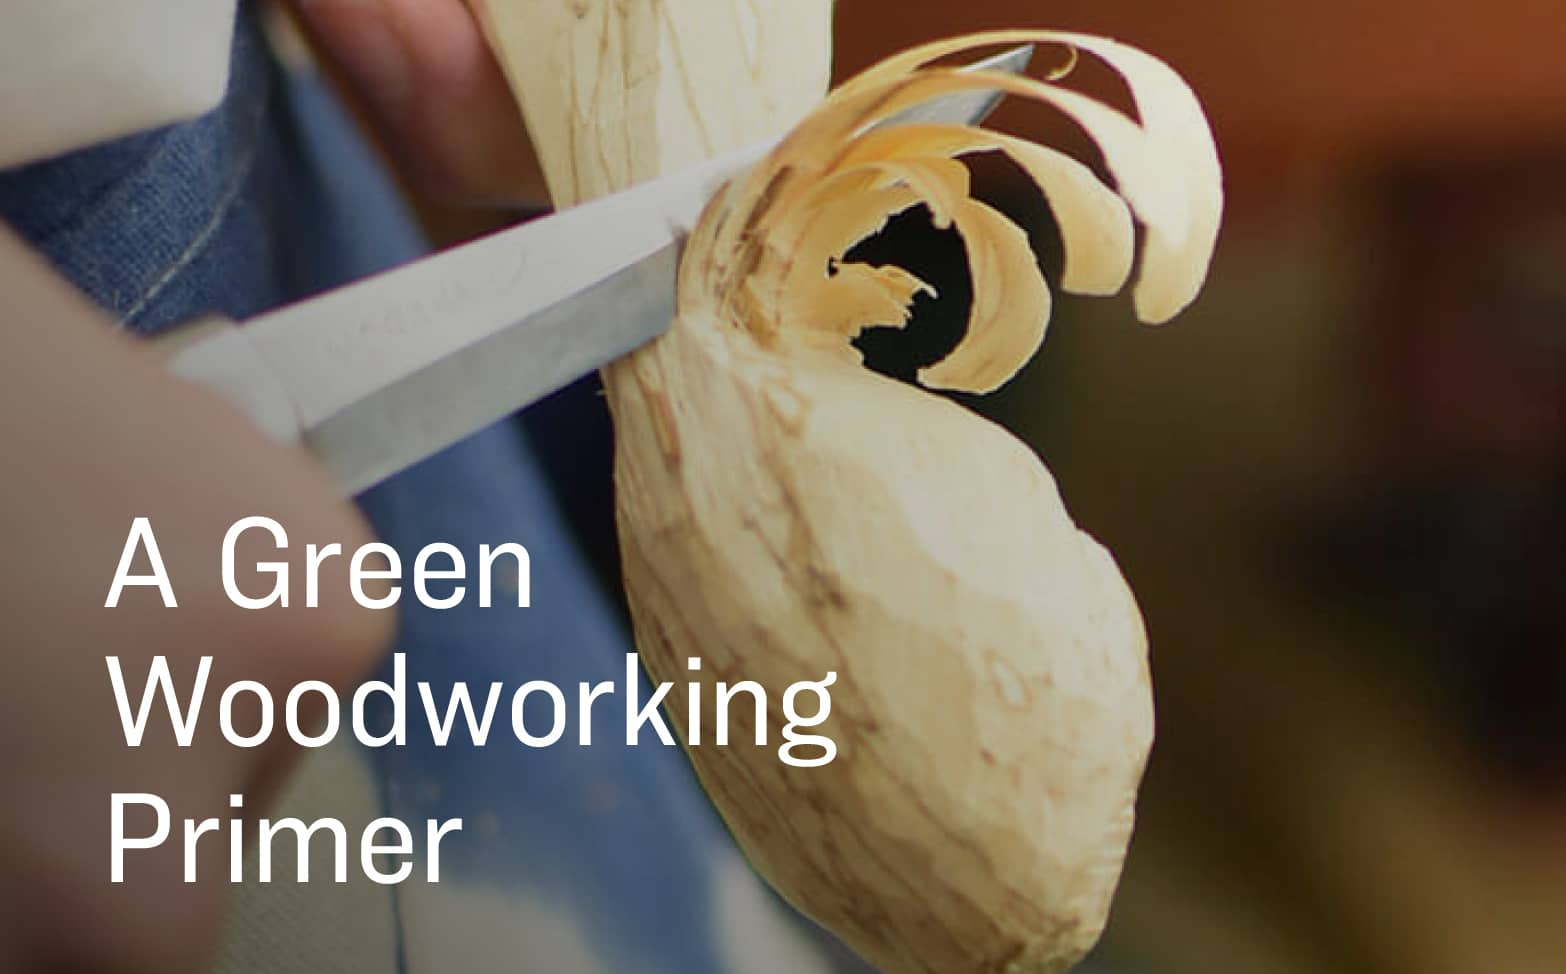 A Green Woodworking Primer